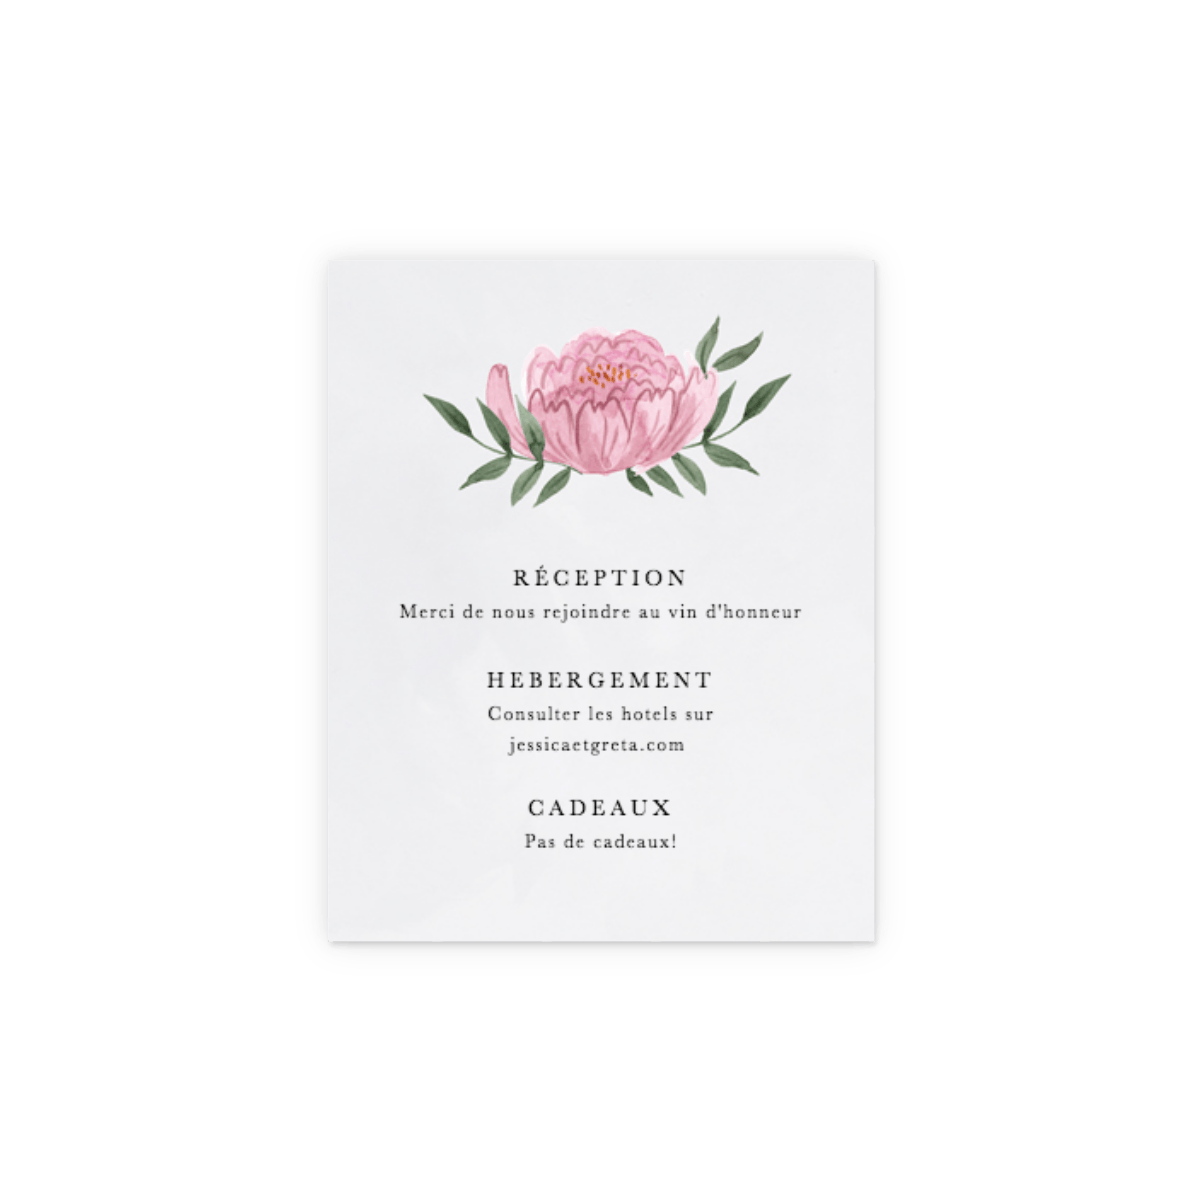 Https%3a%2f%2fwww.papier.com%2fproduct image%2f65529%2f9%2fdusky peonies 14859 carte d informations 1553681415.png?ixlib=rb 1.1